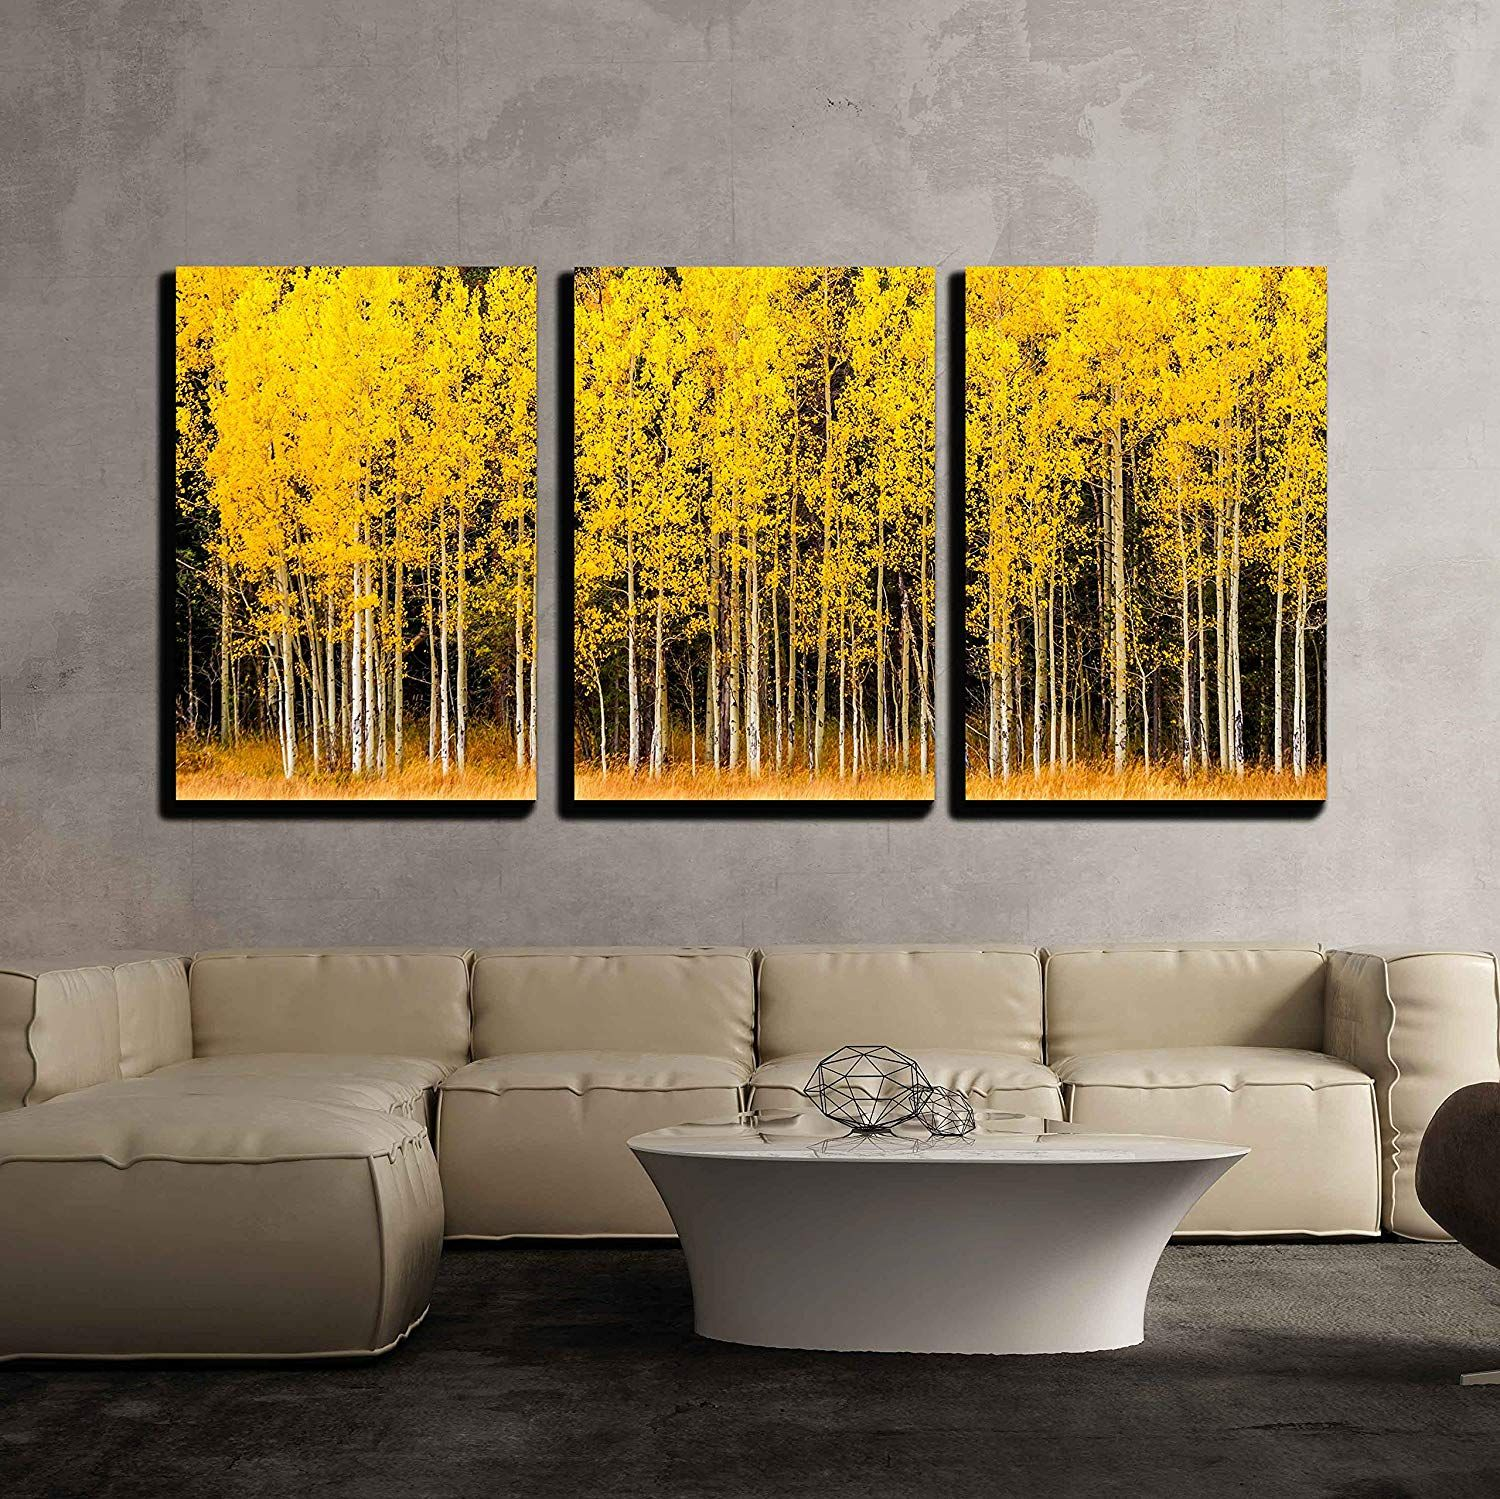 Wall26 3 Piece Canvas Wall Art Stand Of Changing Yellow Aspen Tree In Front Of Dark Green Pine Trees Modern Hom Home Wall Art Canvas Wall Art Love Wall Art